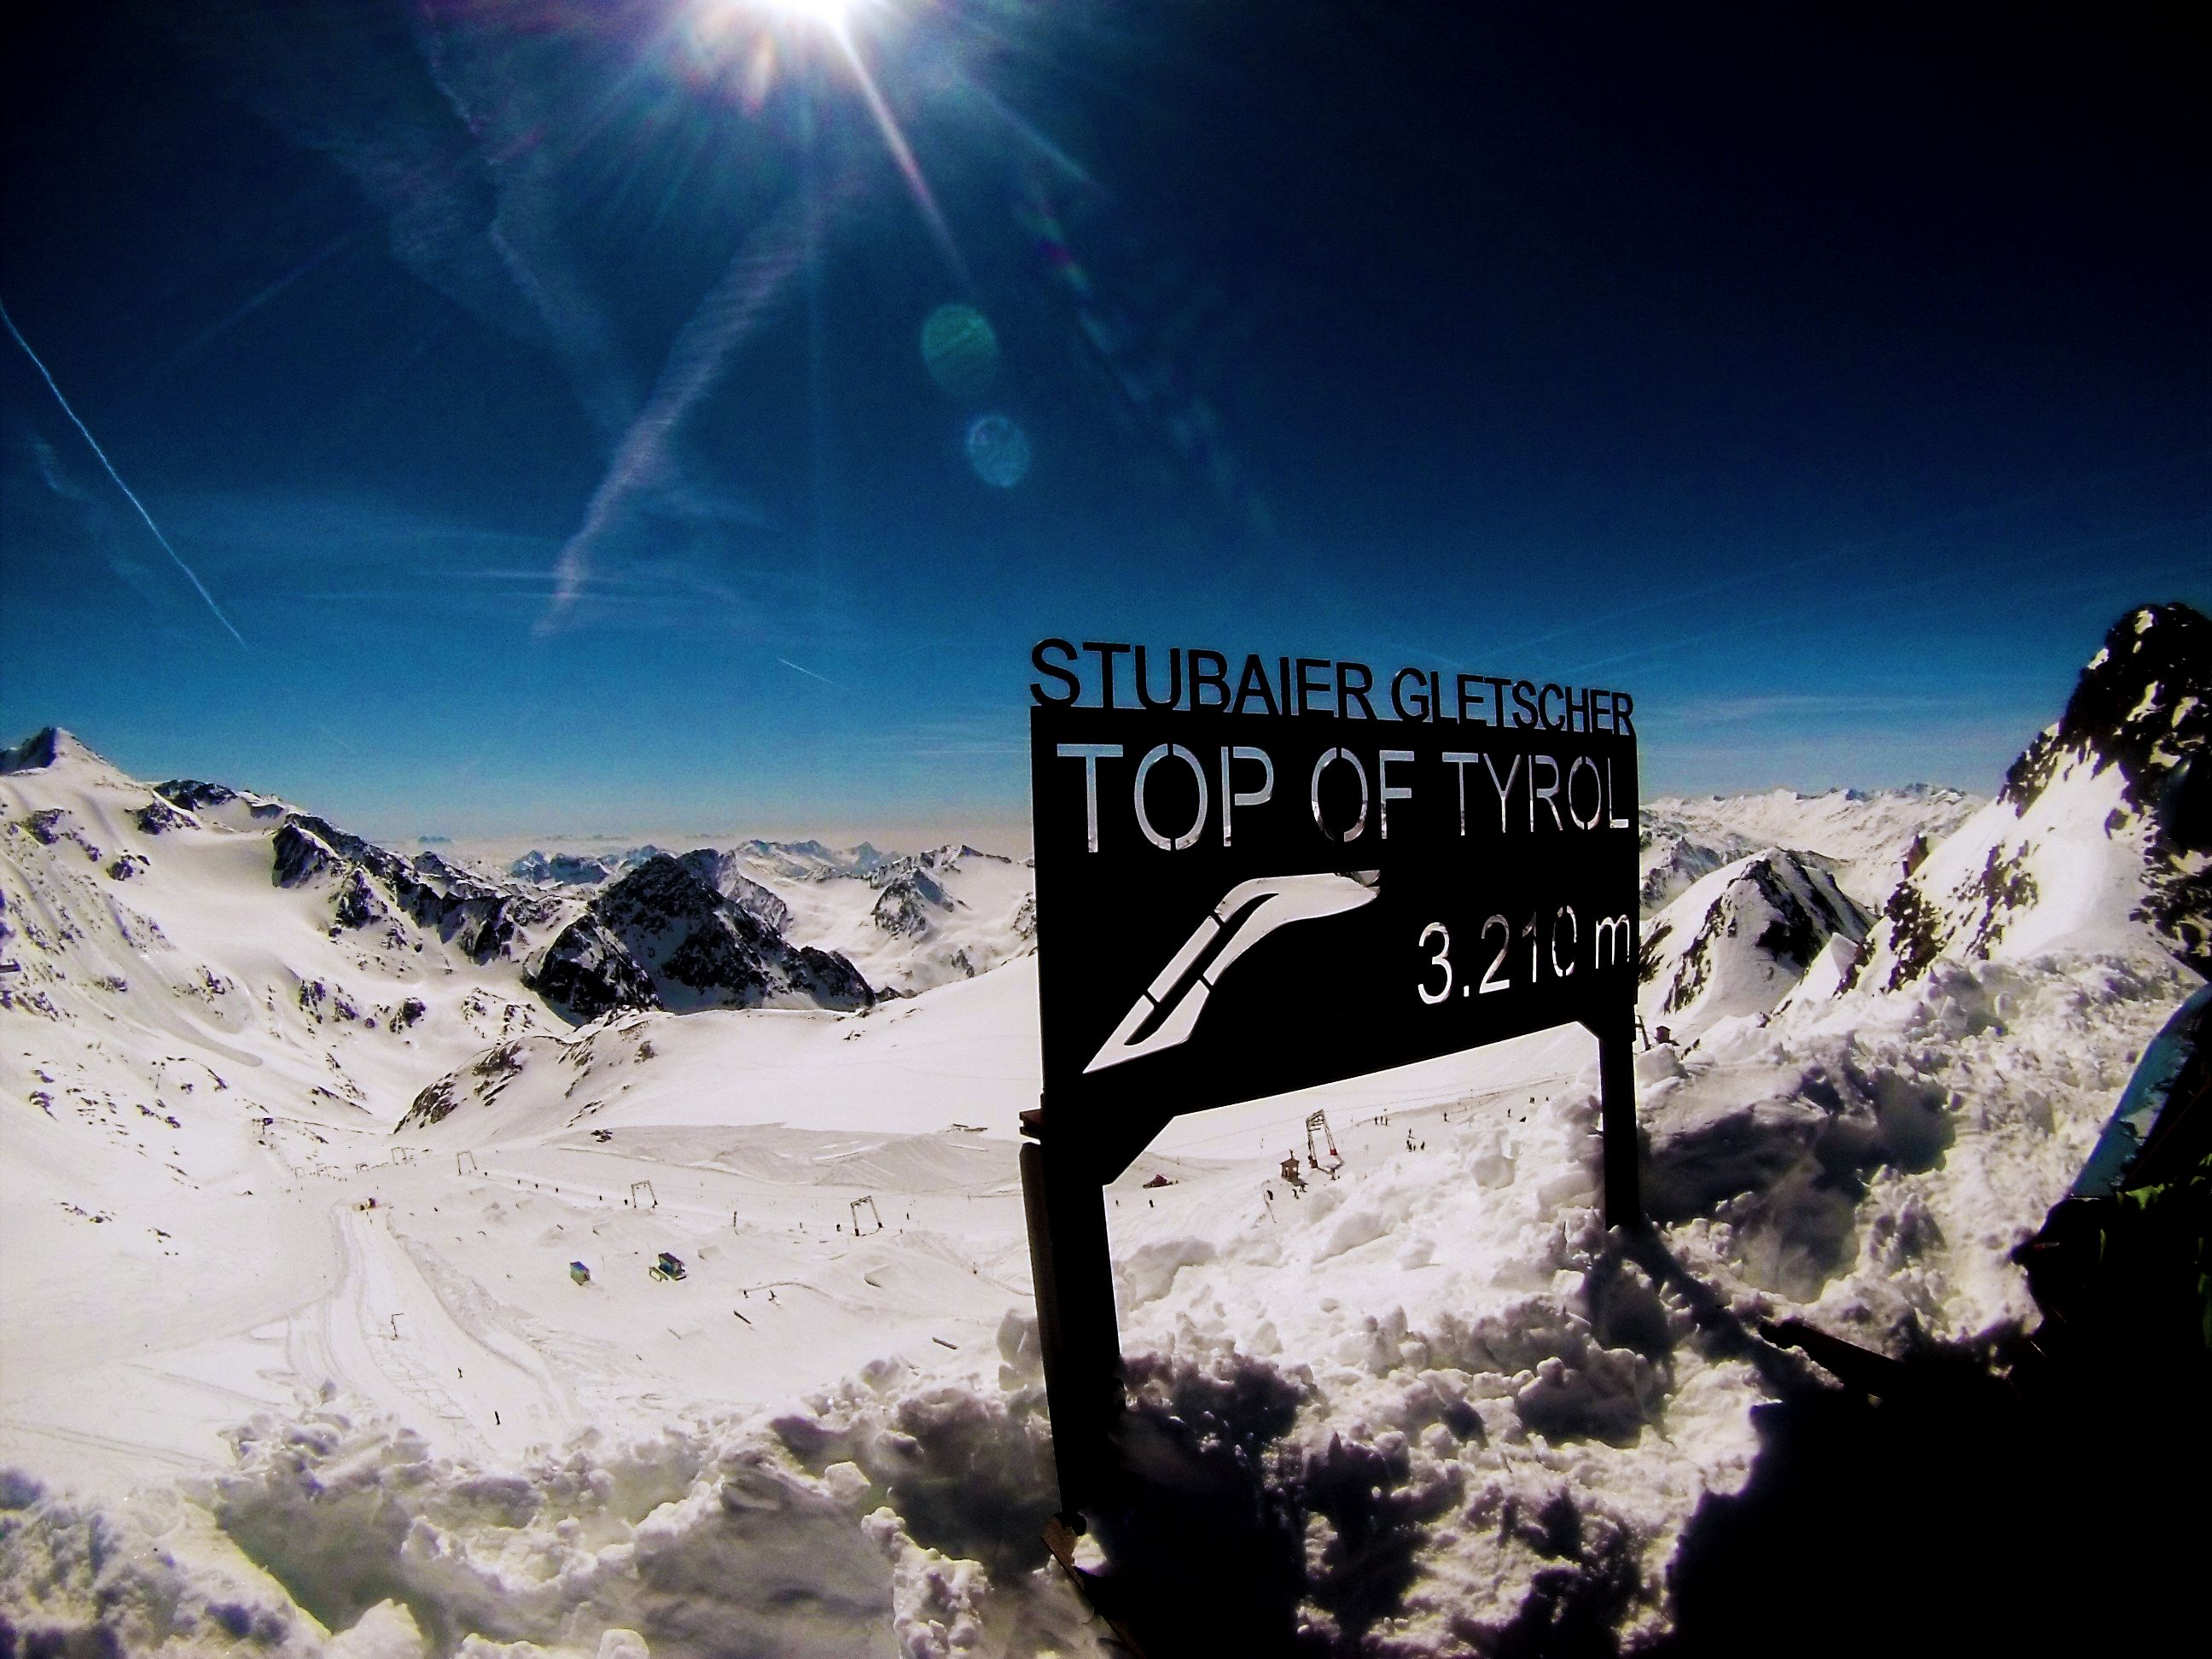 Taken using a GOPRO at the highest point of a mountain in a ski resort in Austria.